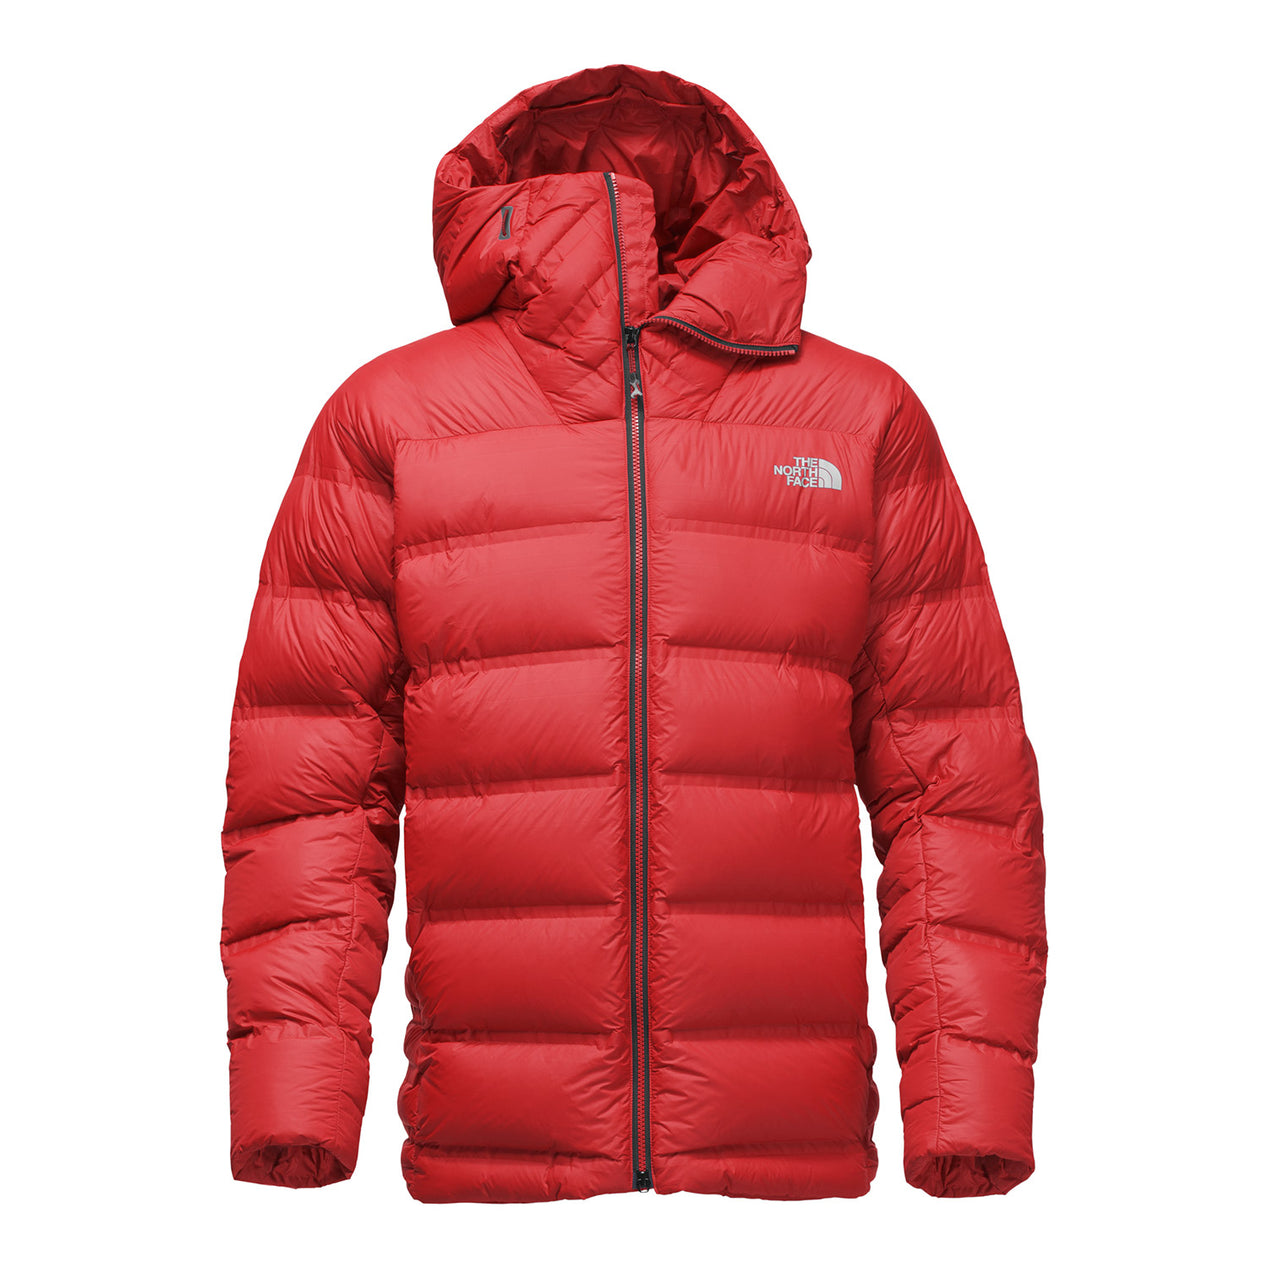 807263edf9 The North Face Men s Summit L6 Down Belay Parka Past Season ...